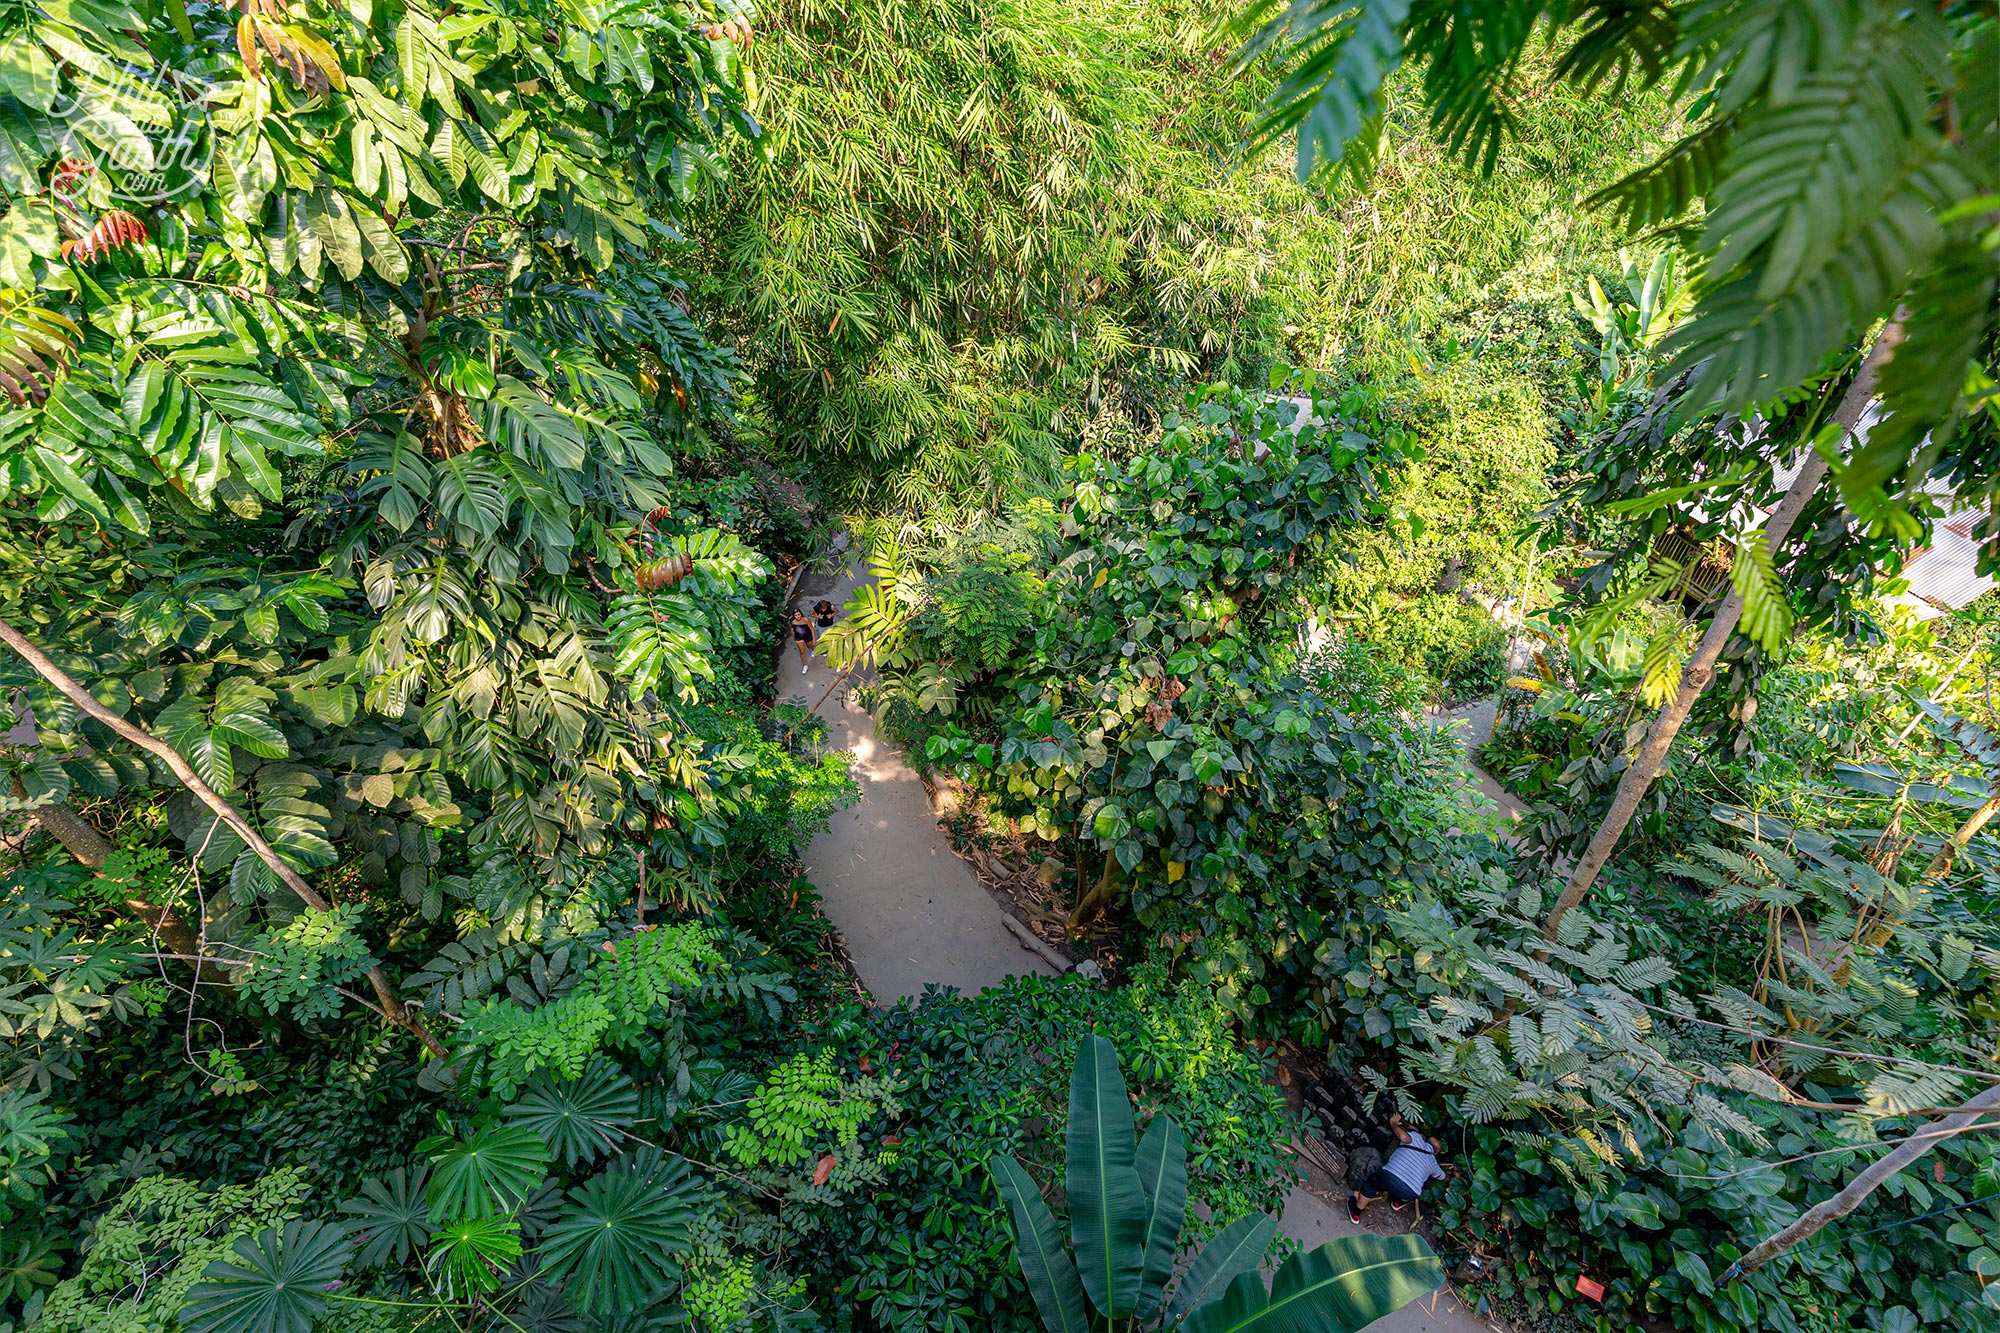 Looking down on the plants and trees from the Rainforest Canopy Walkway